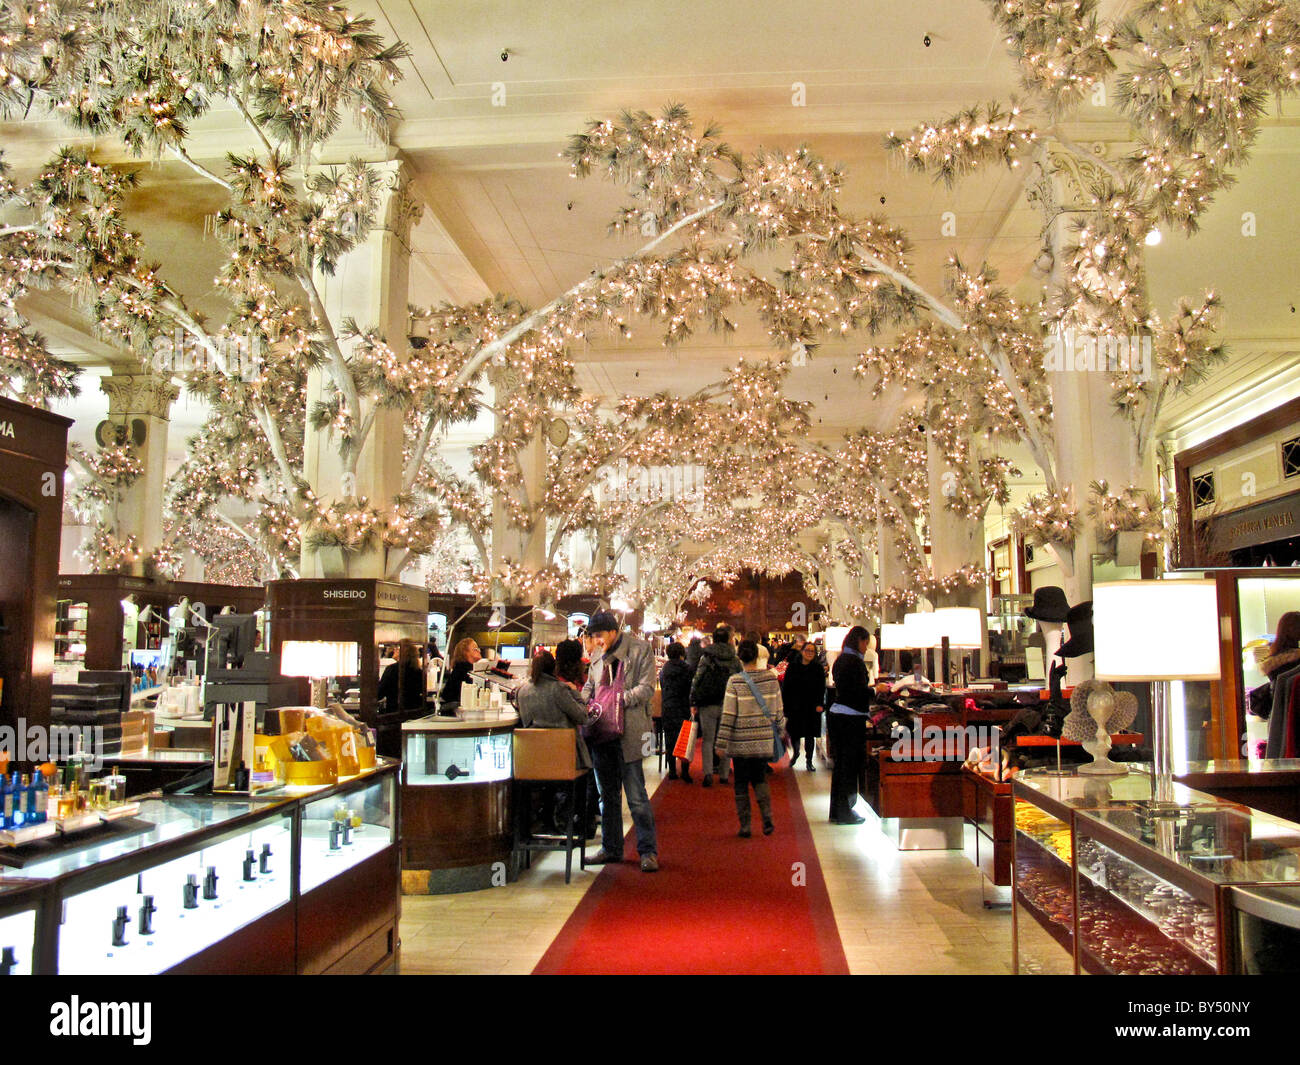 Indoor trees with electric lighted leaves decorate the Saks Fifth Avenue store at Christmas in New York City. - Stock Image